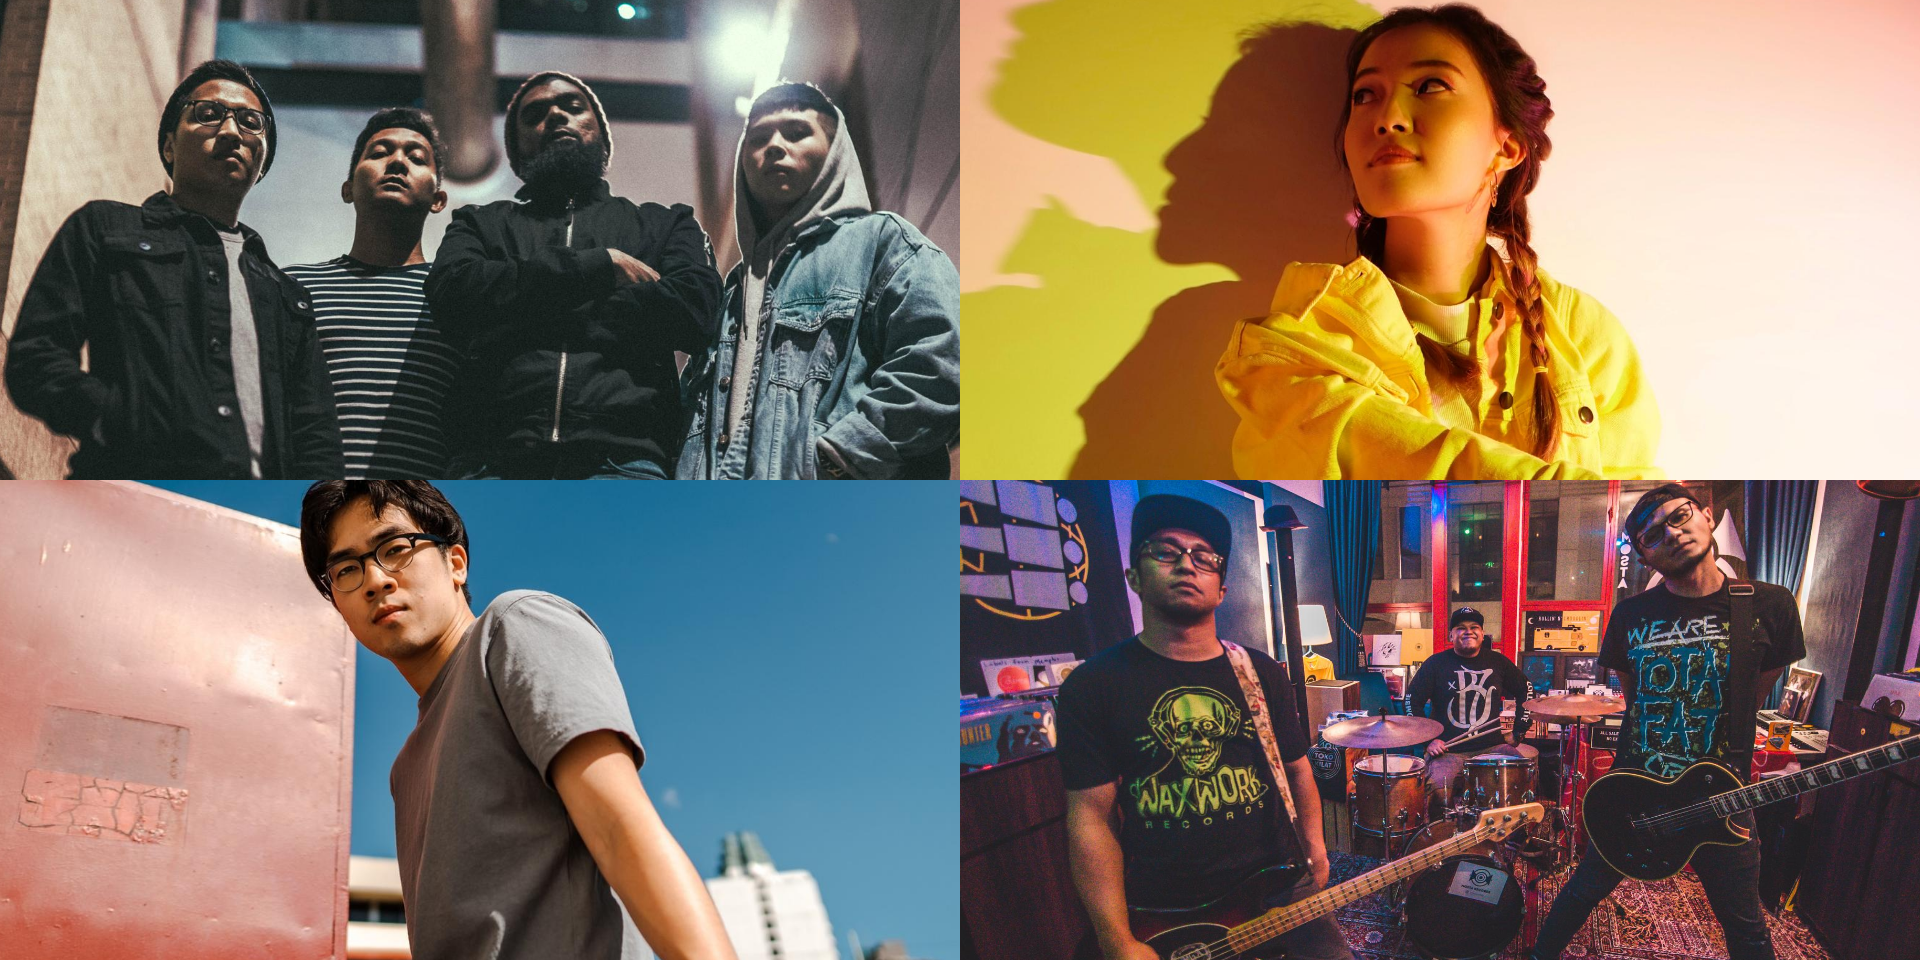 Baybeats 2020 goes digital with special online edition featuring Charlie Lim, Iman's League, Annette Lee, and more